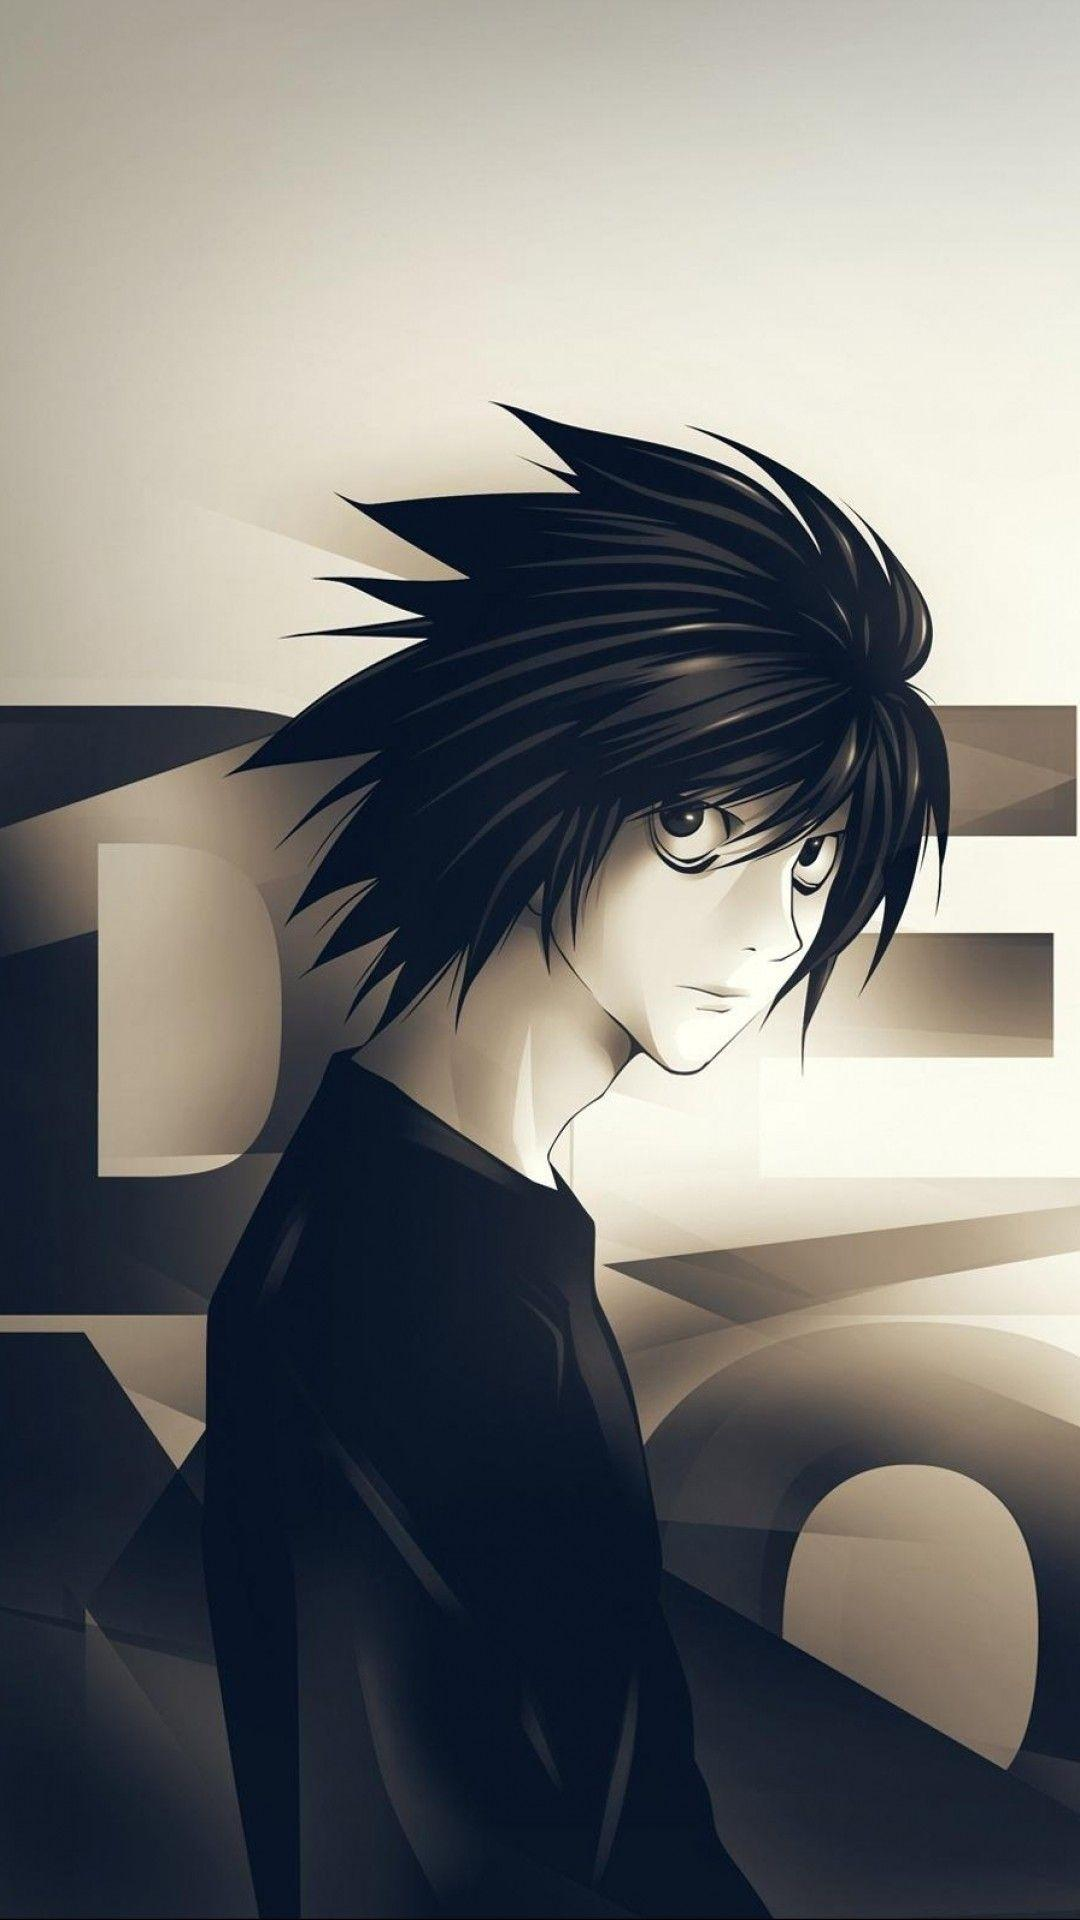 Anime Death Note Full HD 1080x1920 Wallpapers - Wallpaper Cave